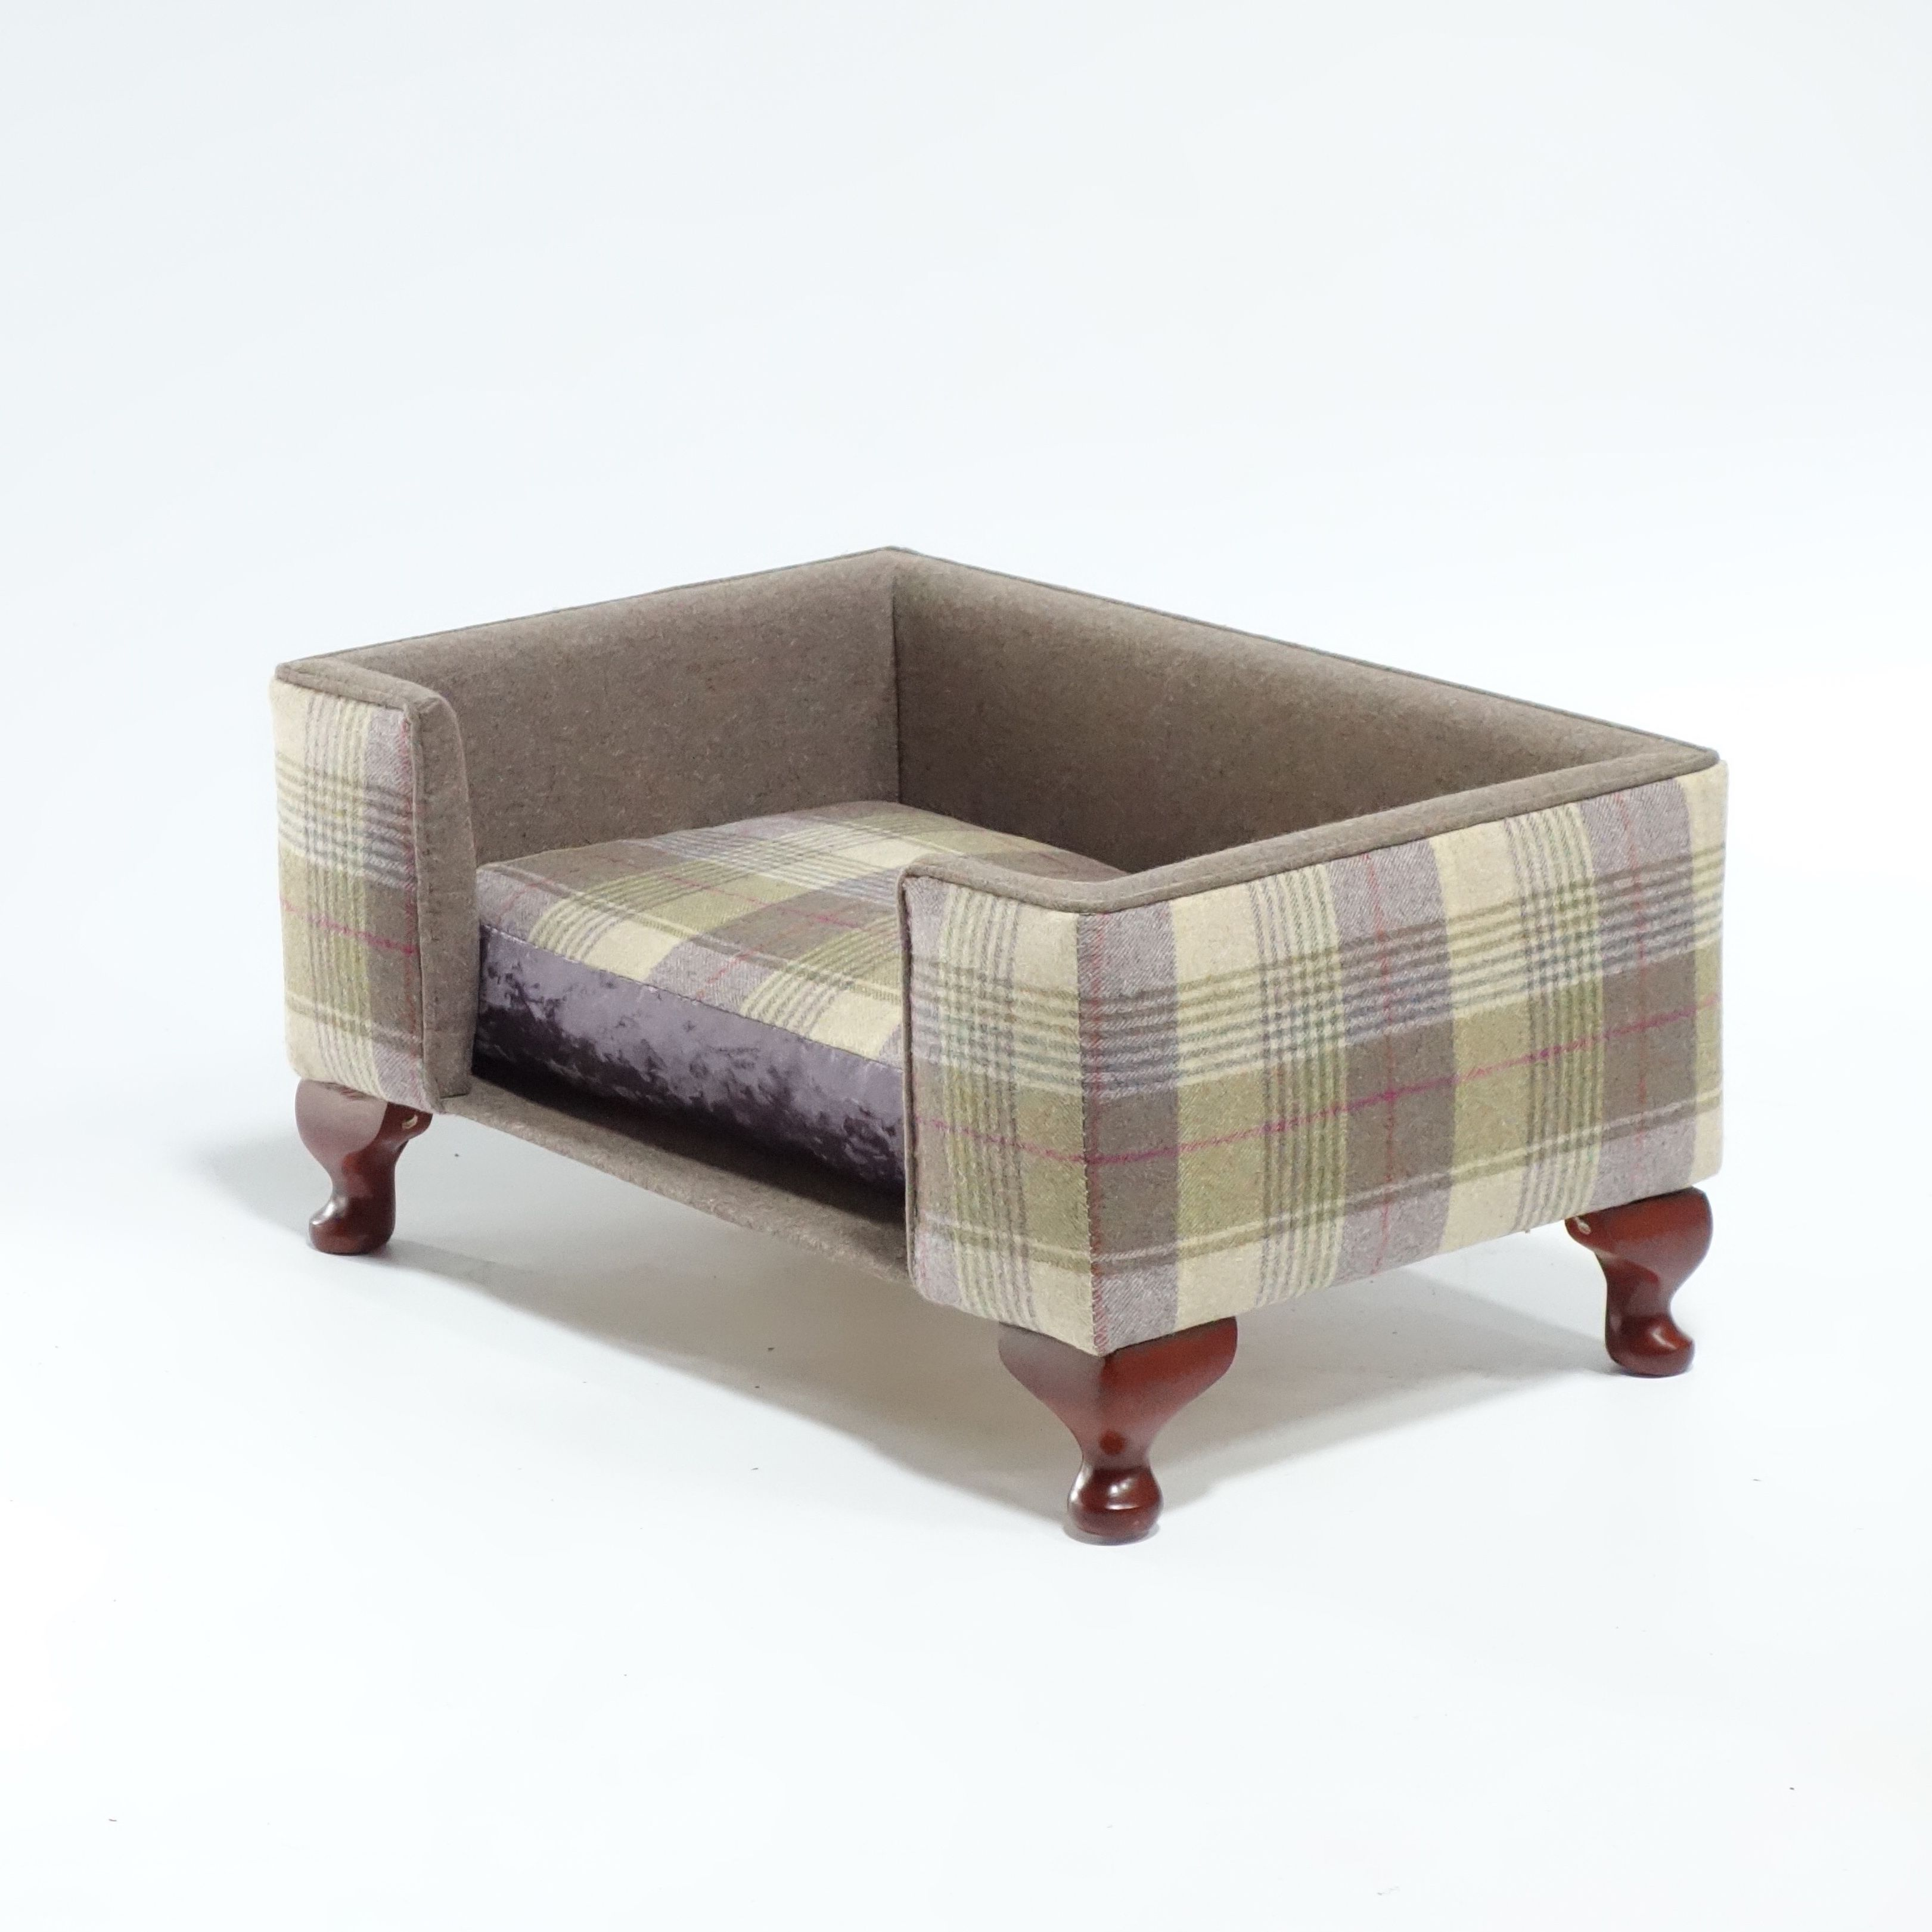 The Woburn Luxury Dog Bed By